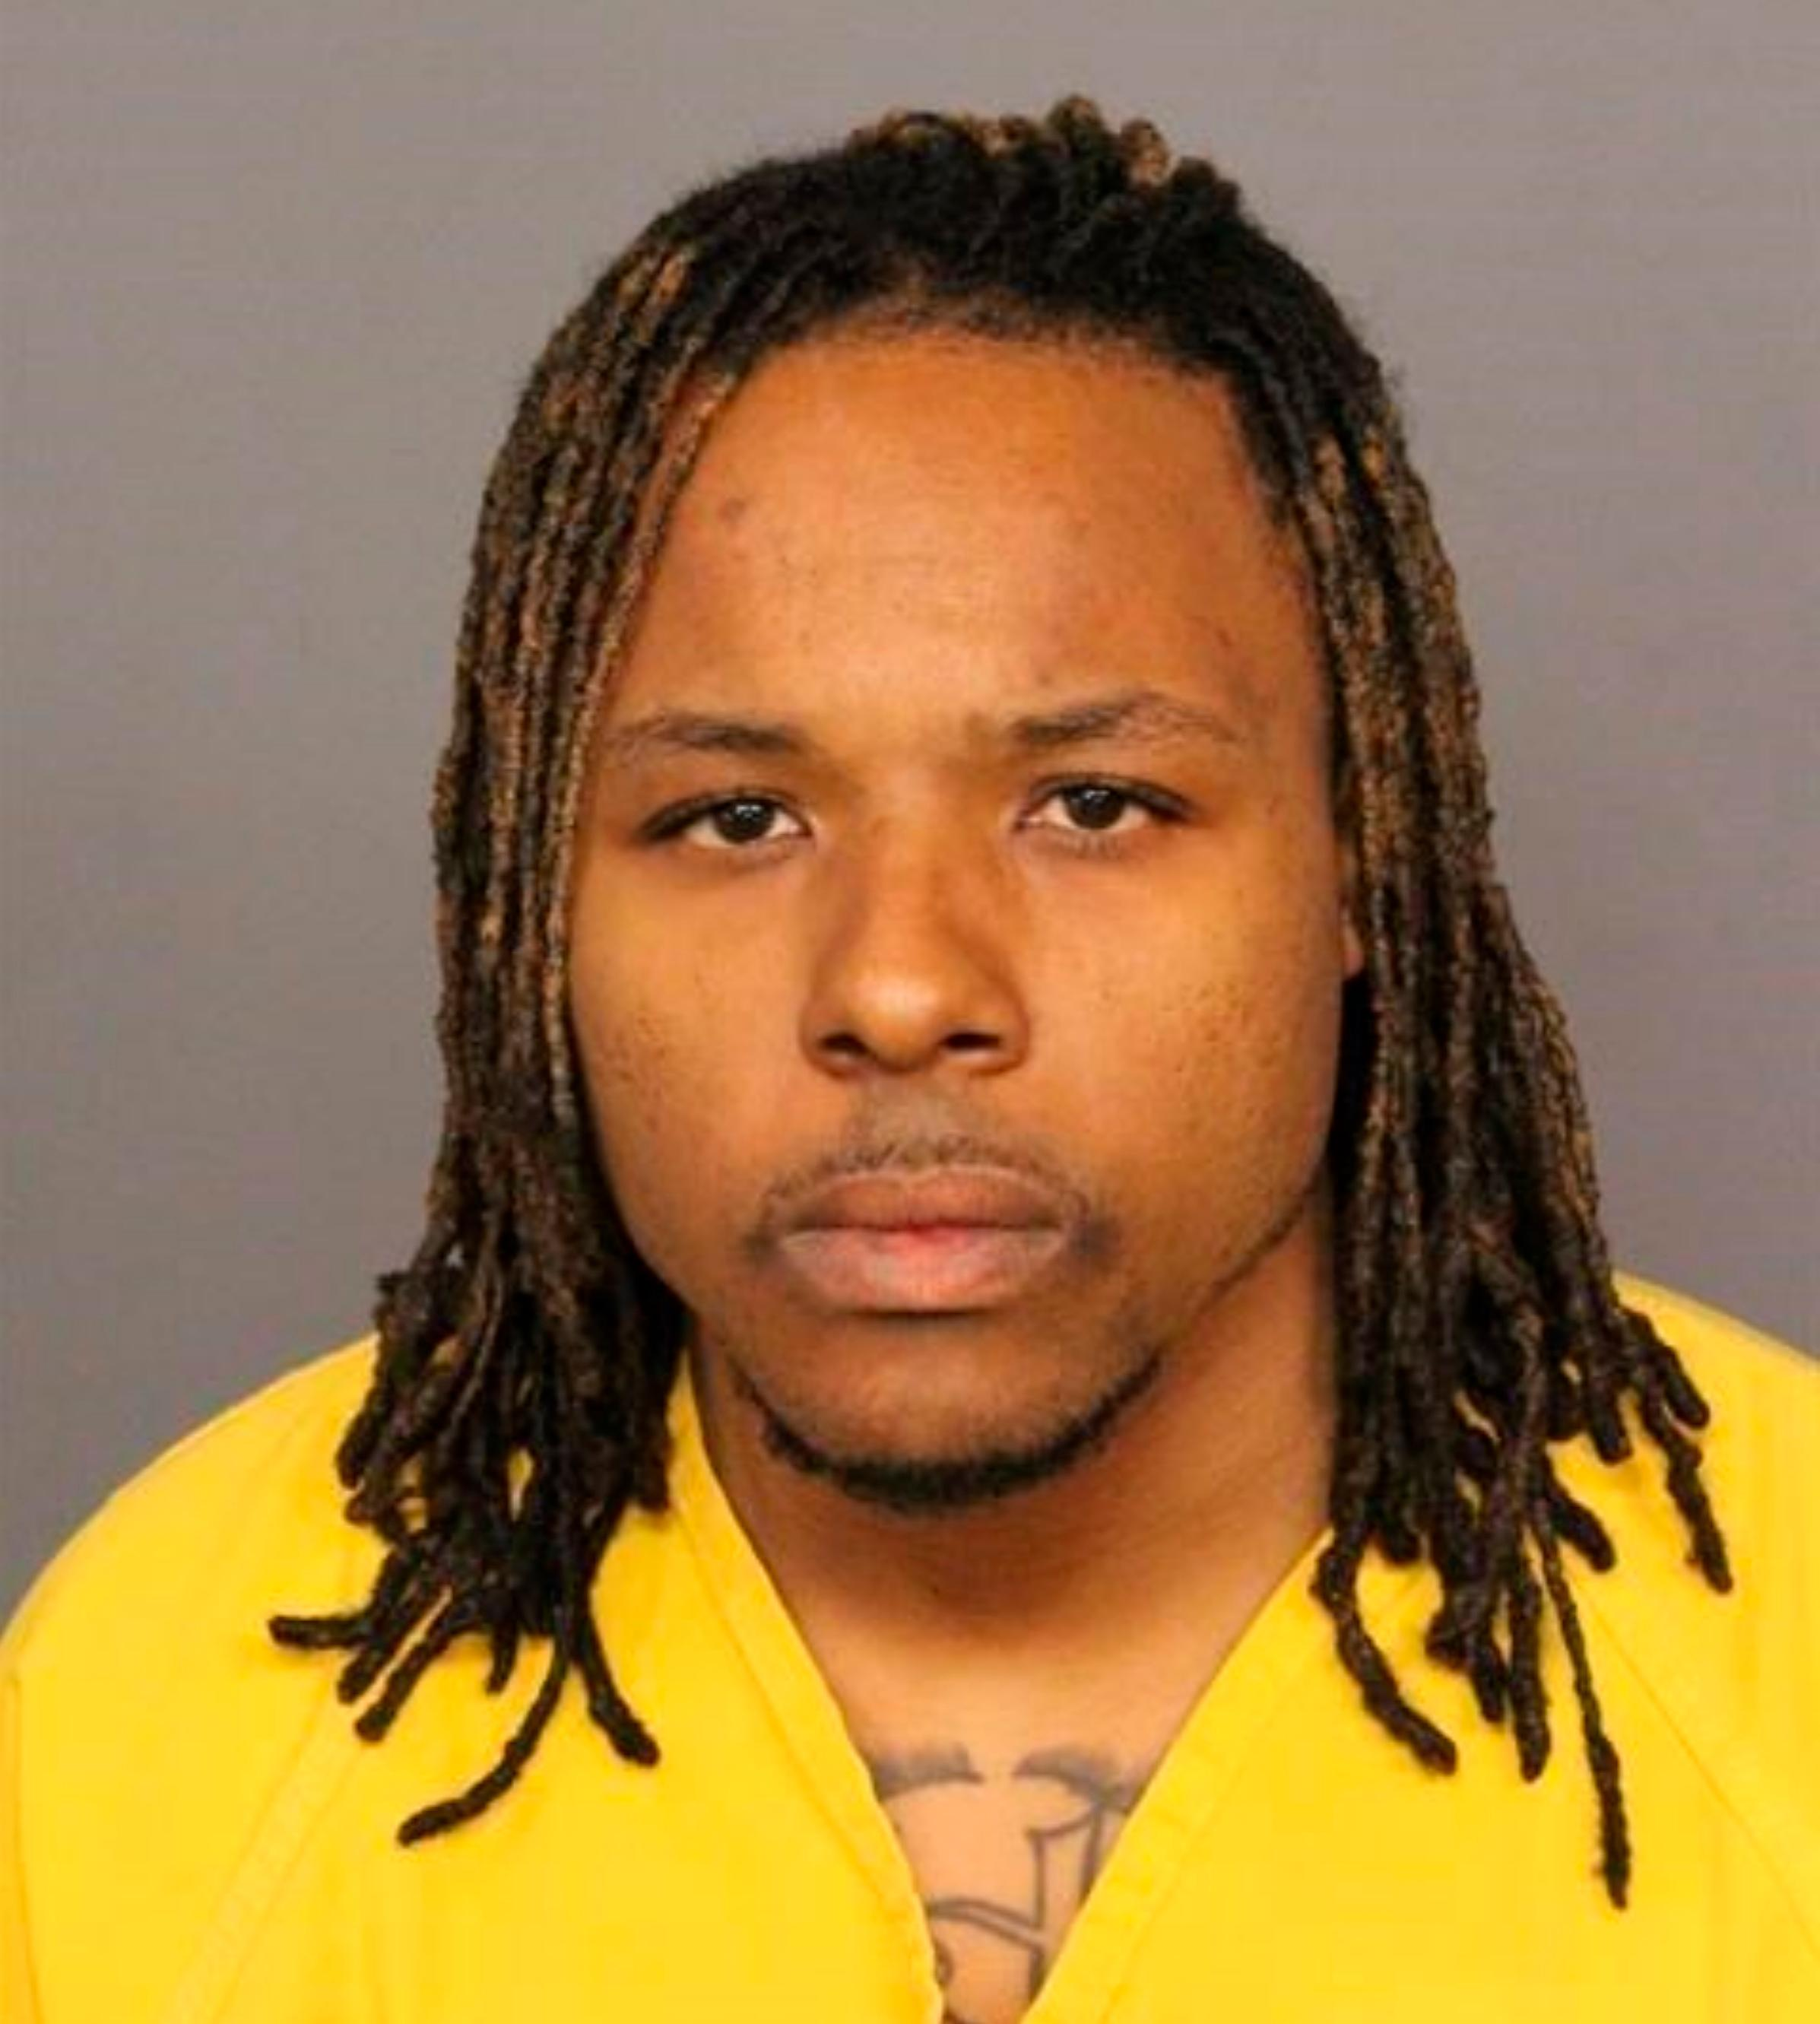 This booking image provided by the Denver Police Department, shows Michael Andre Hancock, who was arrested Friday, June 1, 2018, on suspicion of first-degree murder in the shooting on an interstate. (Denver Police Department via AP)